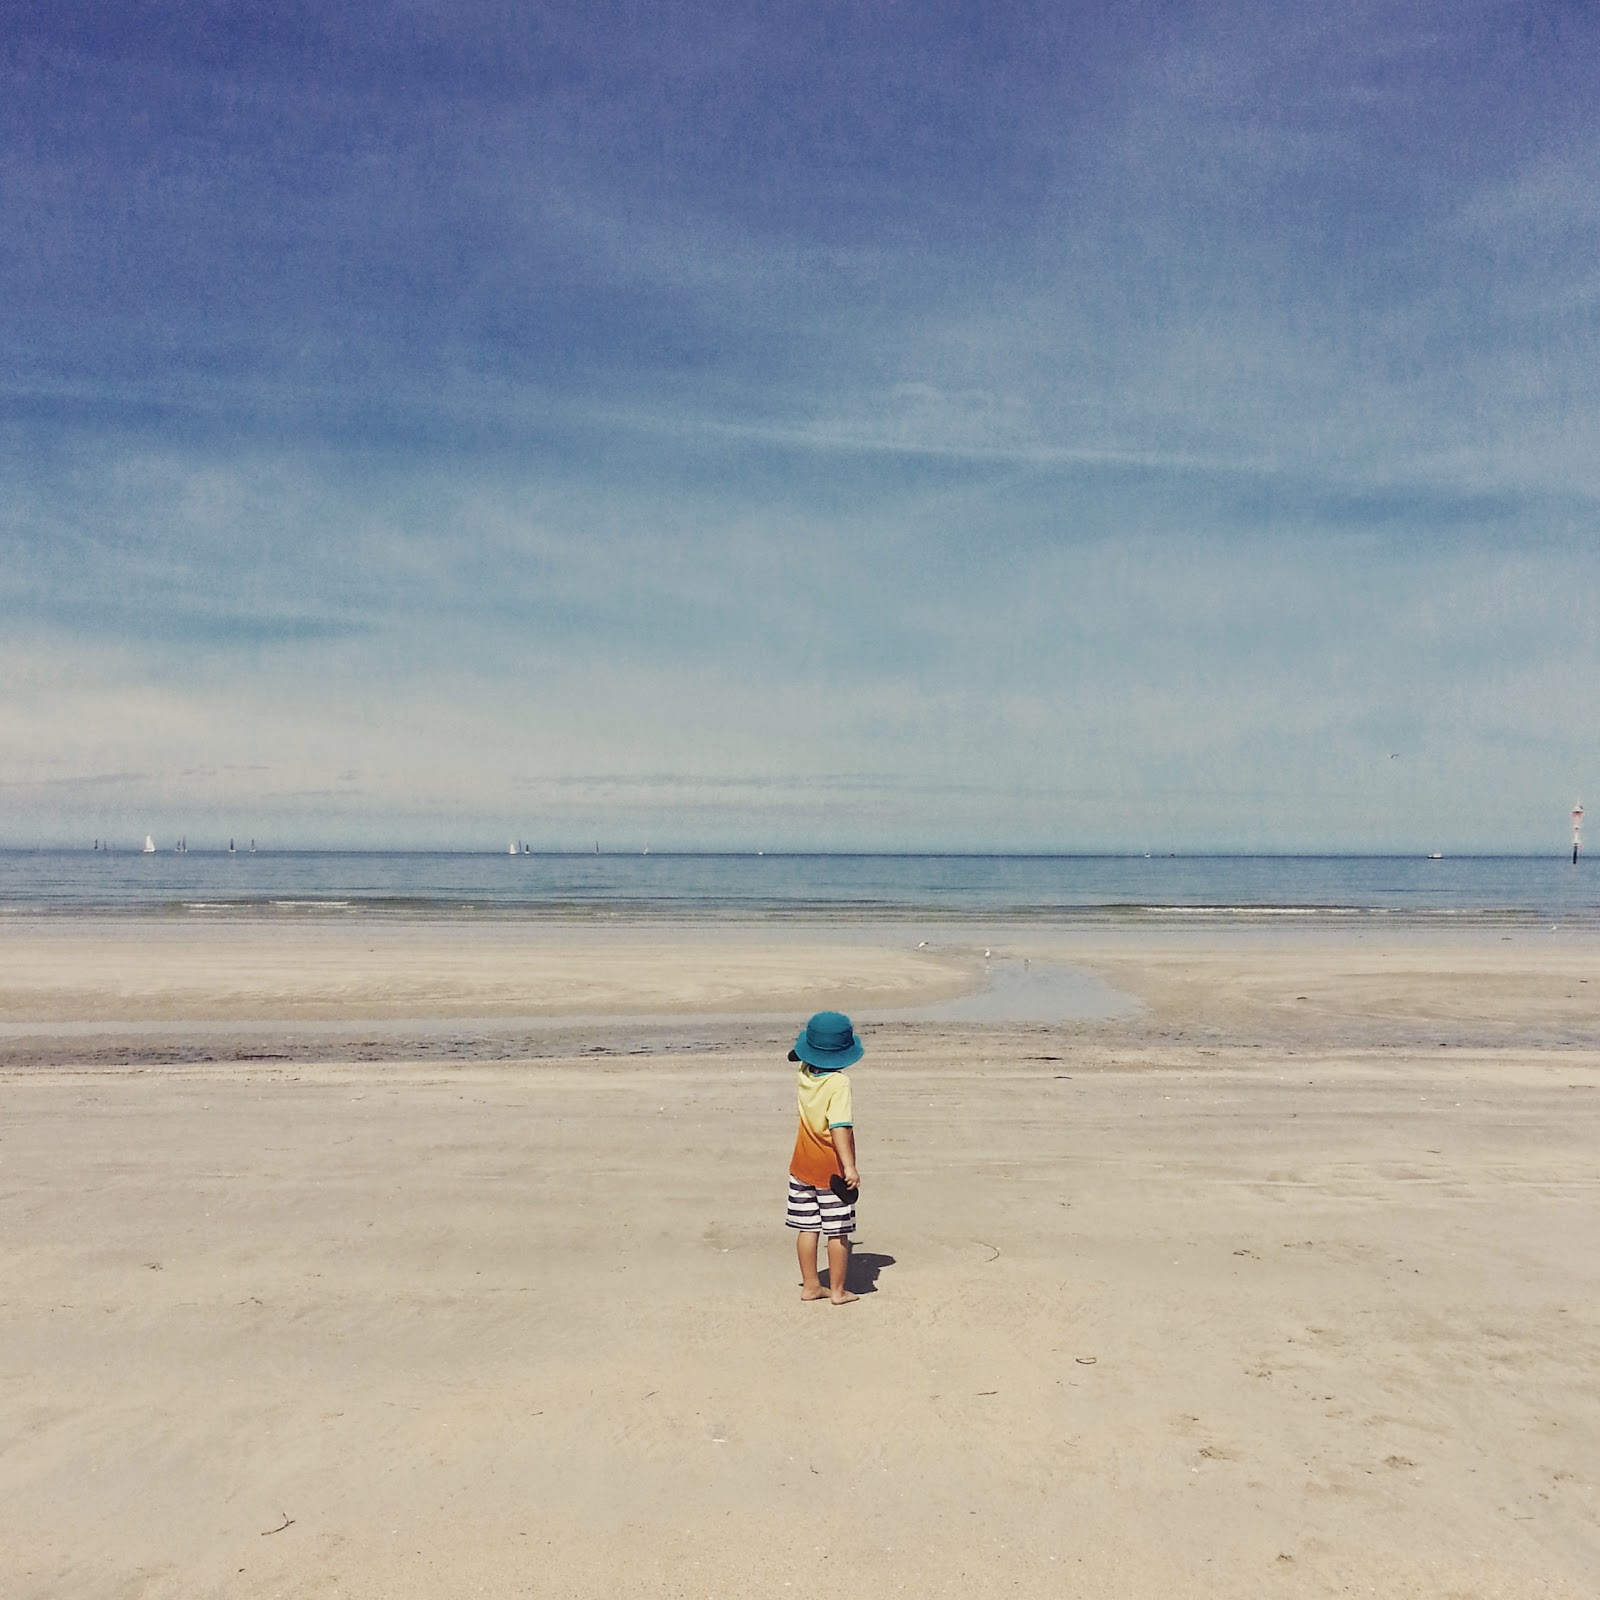 beach scene with sunny blue skies, calm blue ocean, saing boats and little boy pointing out to sea